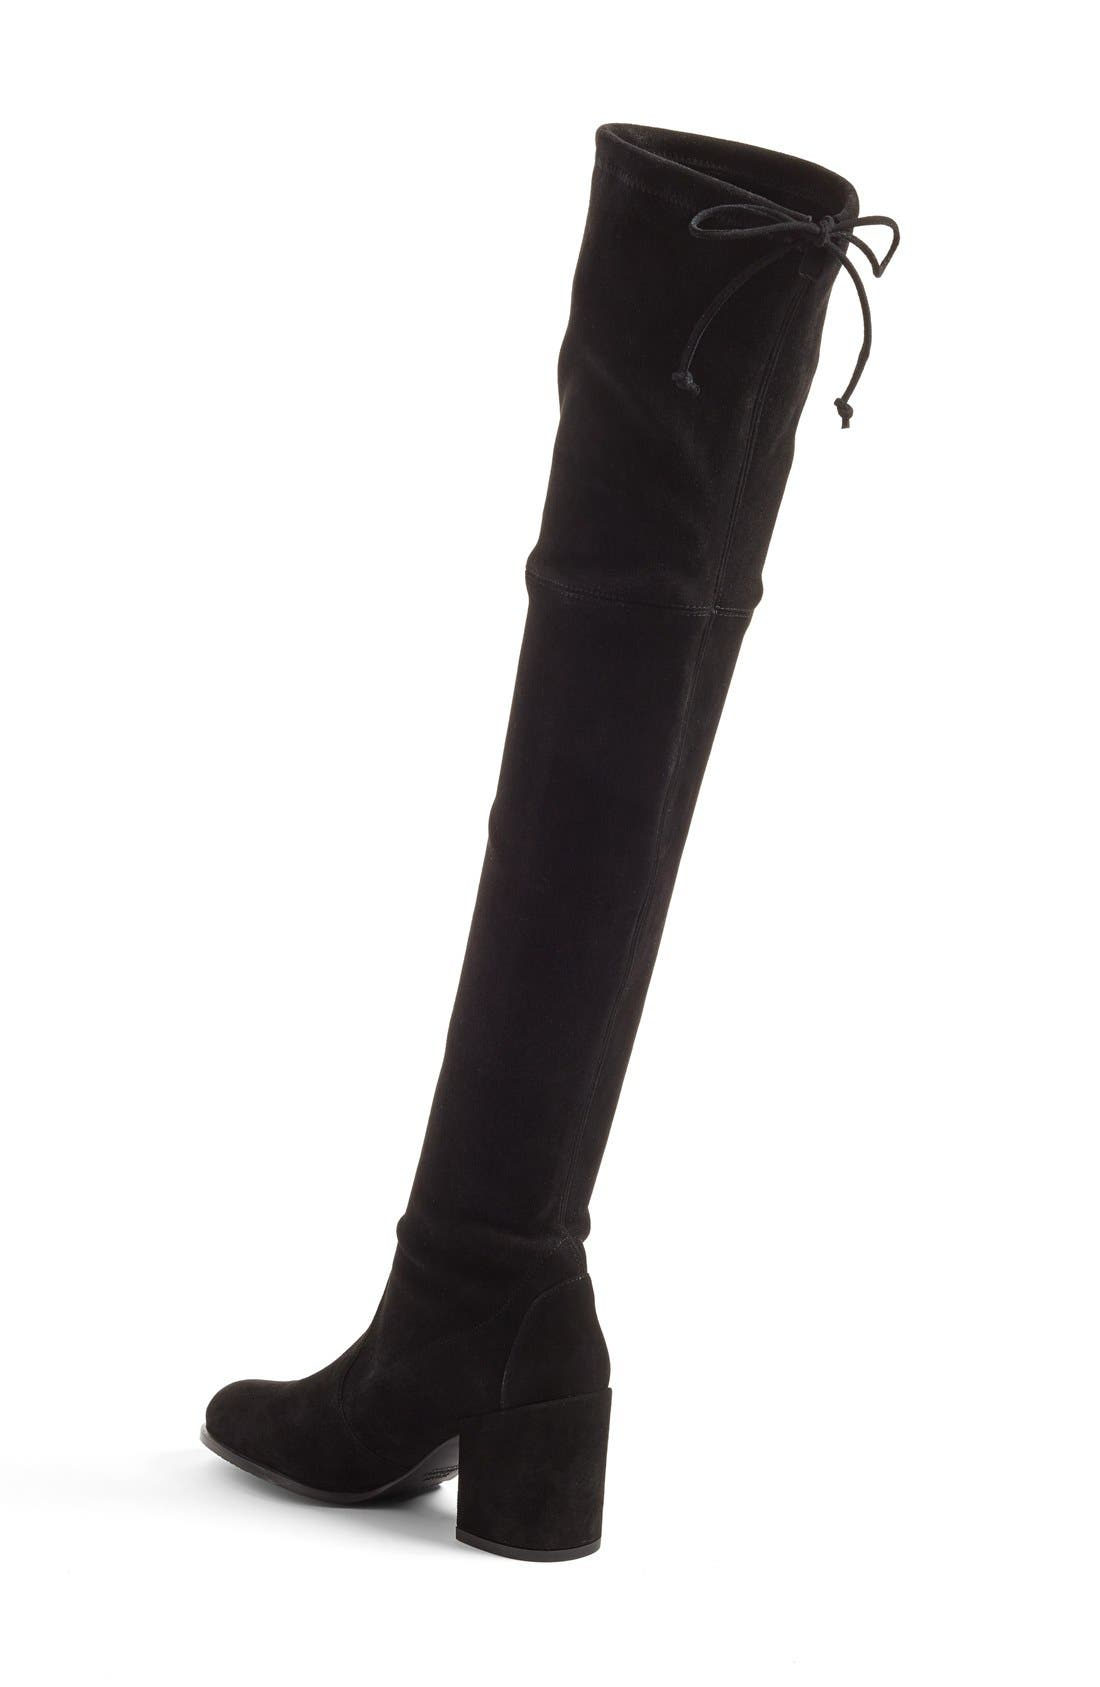 Tieland Over the Knee Boot,                             Alternate thumbnail 2, color,                             Black Suede